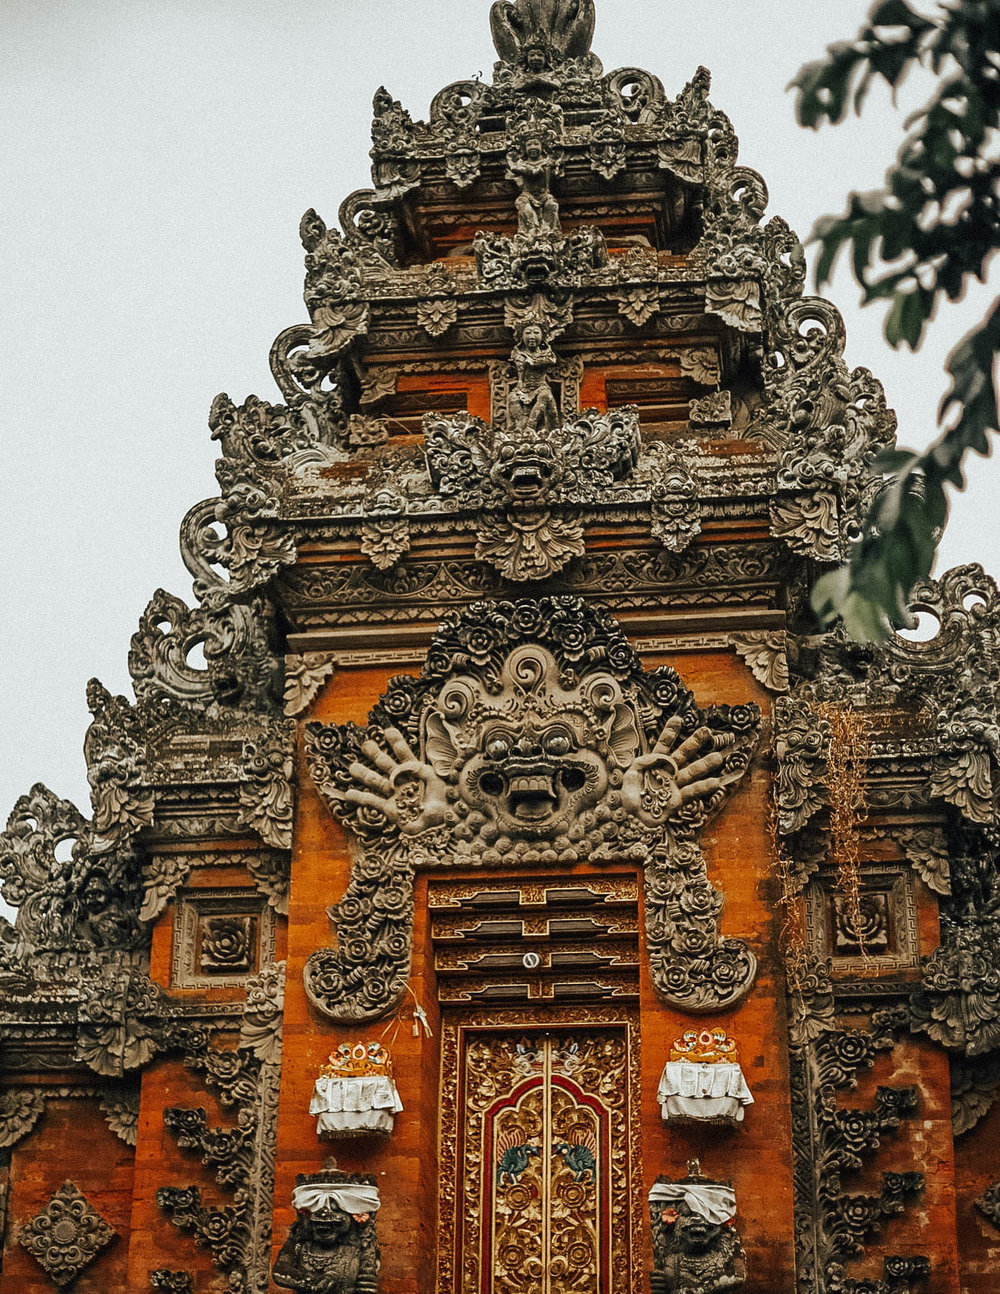 In Bali, Hinduism is the most predominant religion, with Muslim closely to follow. A Balinese temple is referred to as a Pura. When visiting the temples, your legs must be covered, and menstruating women are forbidden to enter, as it is considered impure. Though many still abide by this ancient belief, many are also slowly moving away from it.